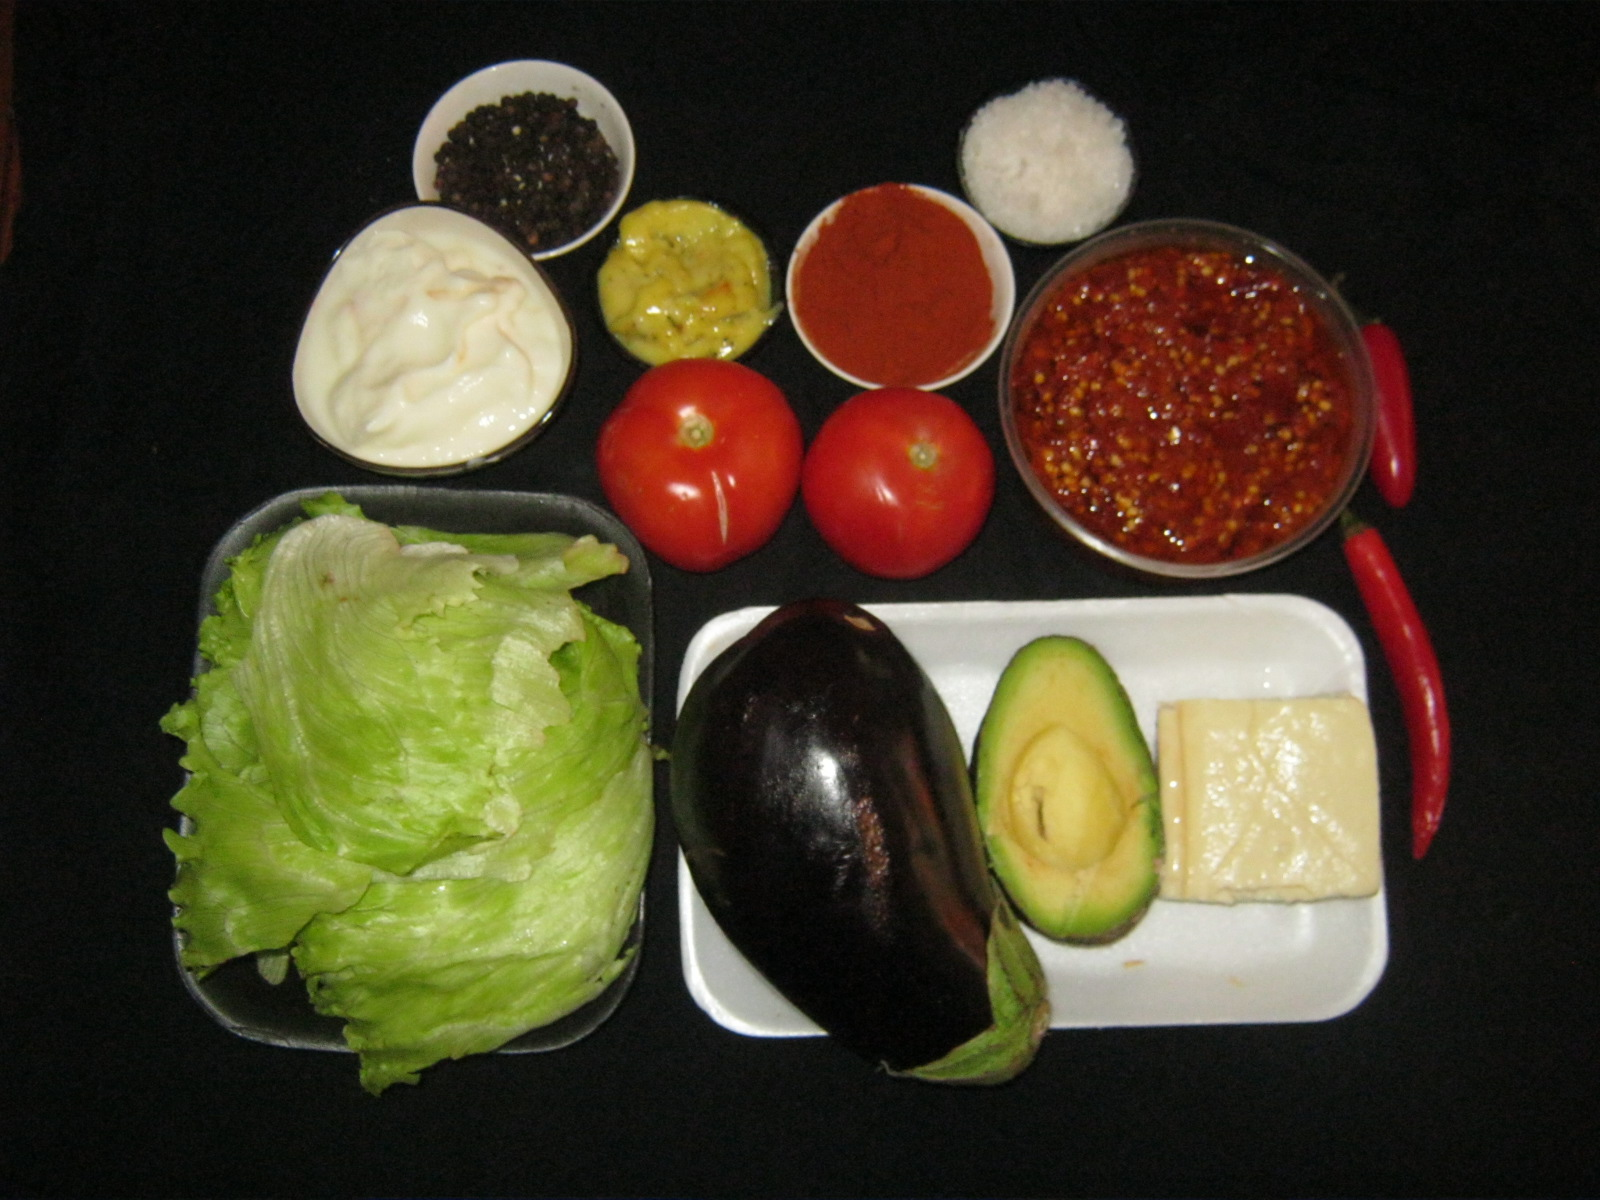 Ingredients for Brinjal Tomato Avo Burger